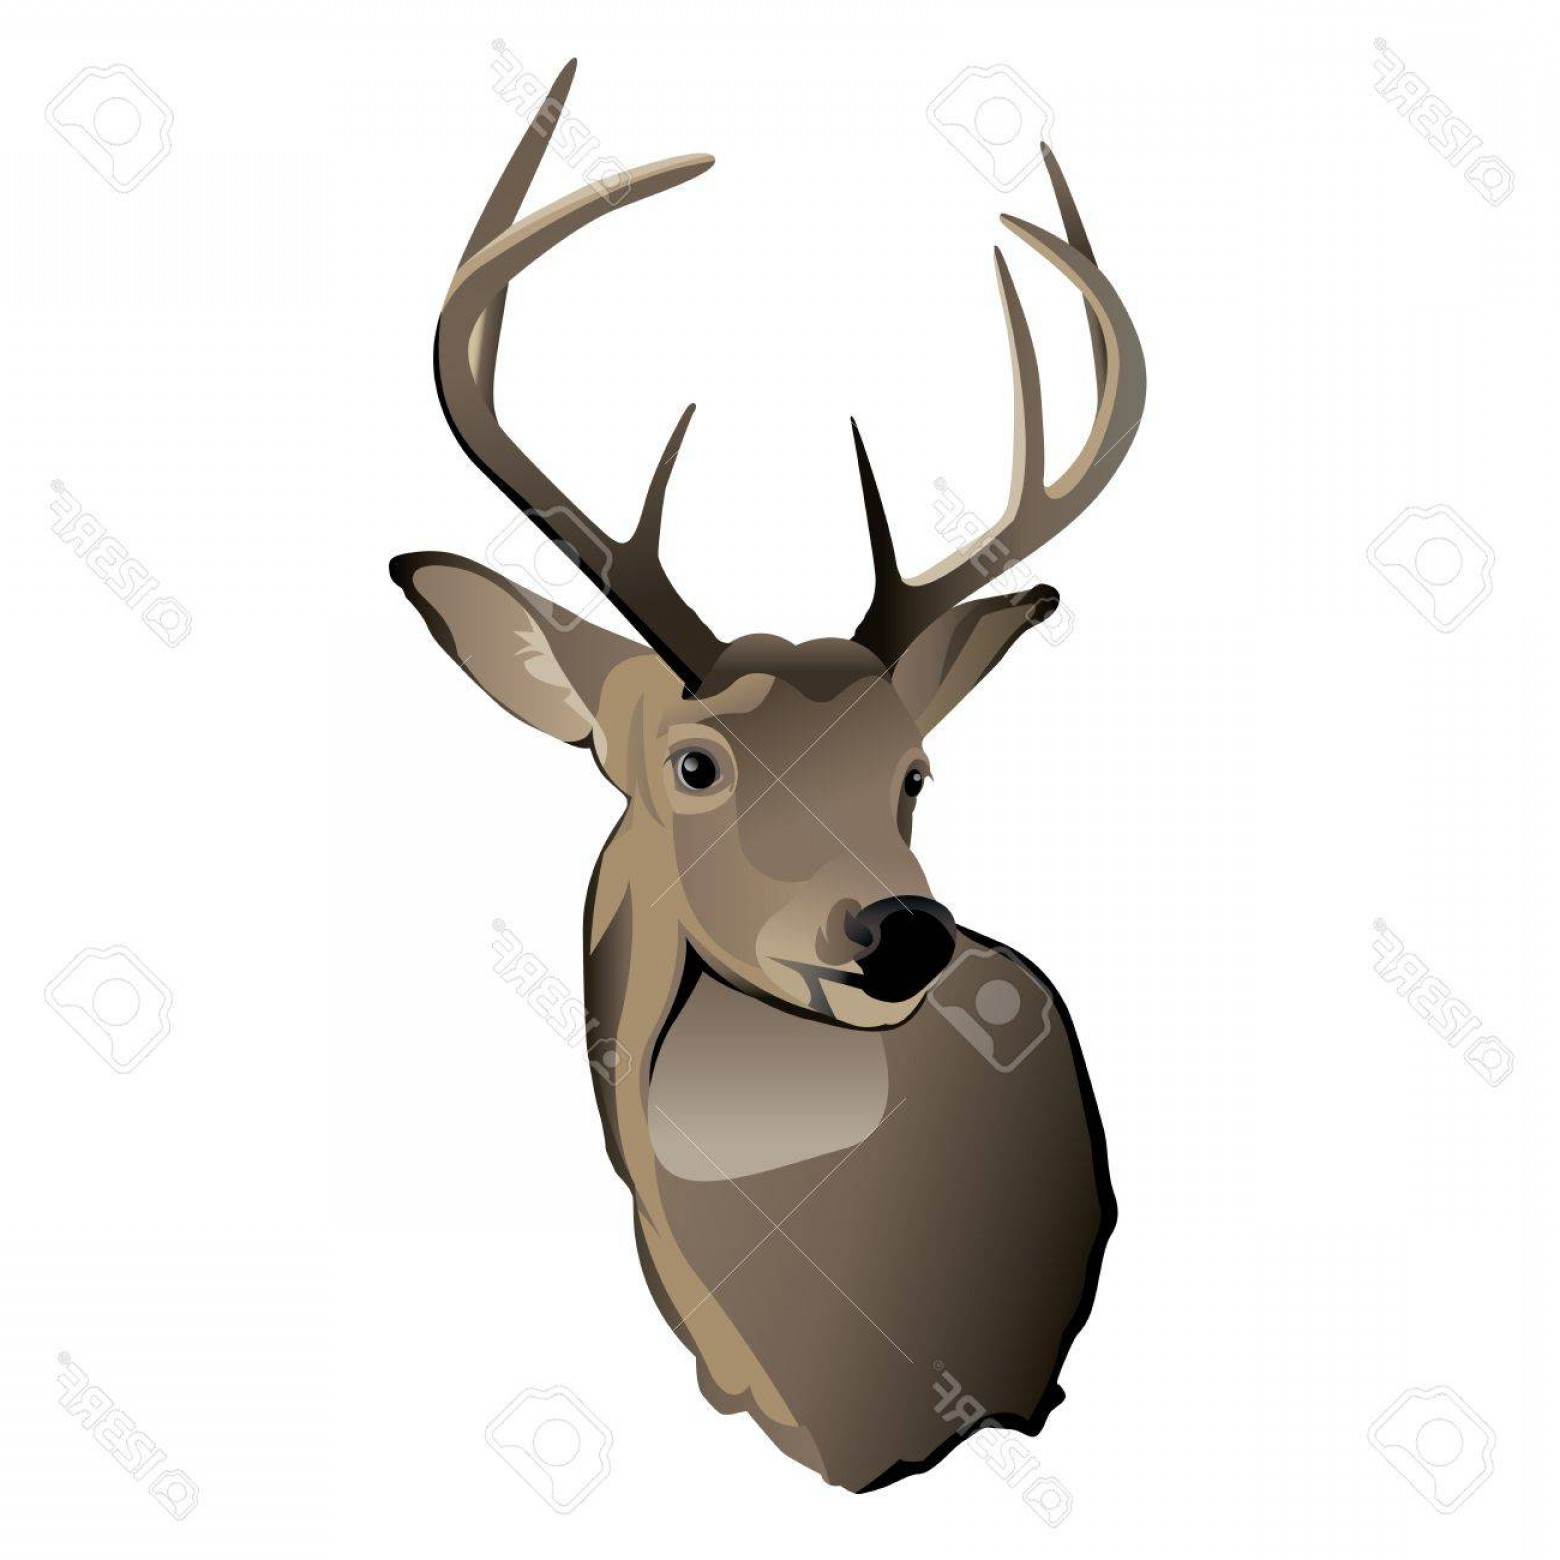 1560x1560 Photoa Shoulder Mount Of A Trophy Whitetailed Deer Buck Lazttweet